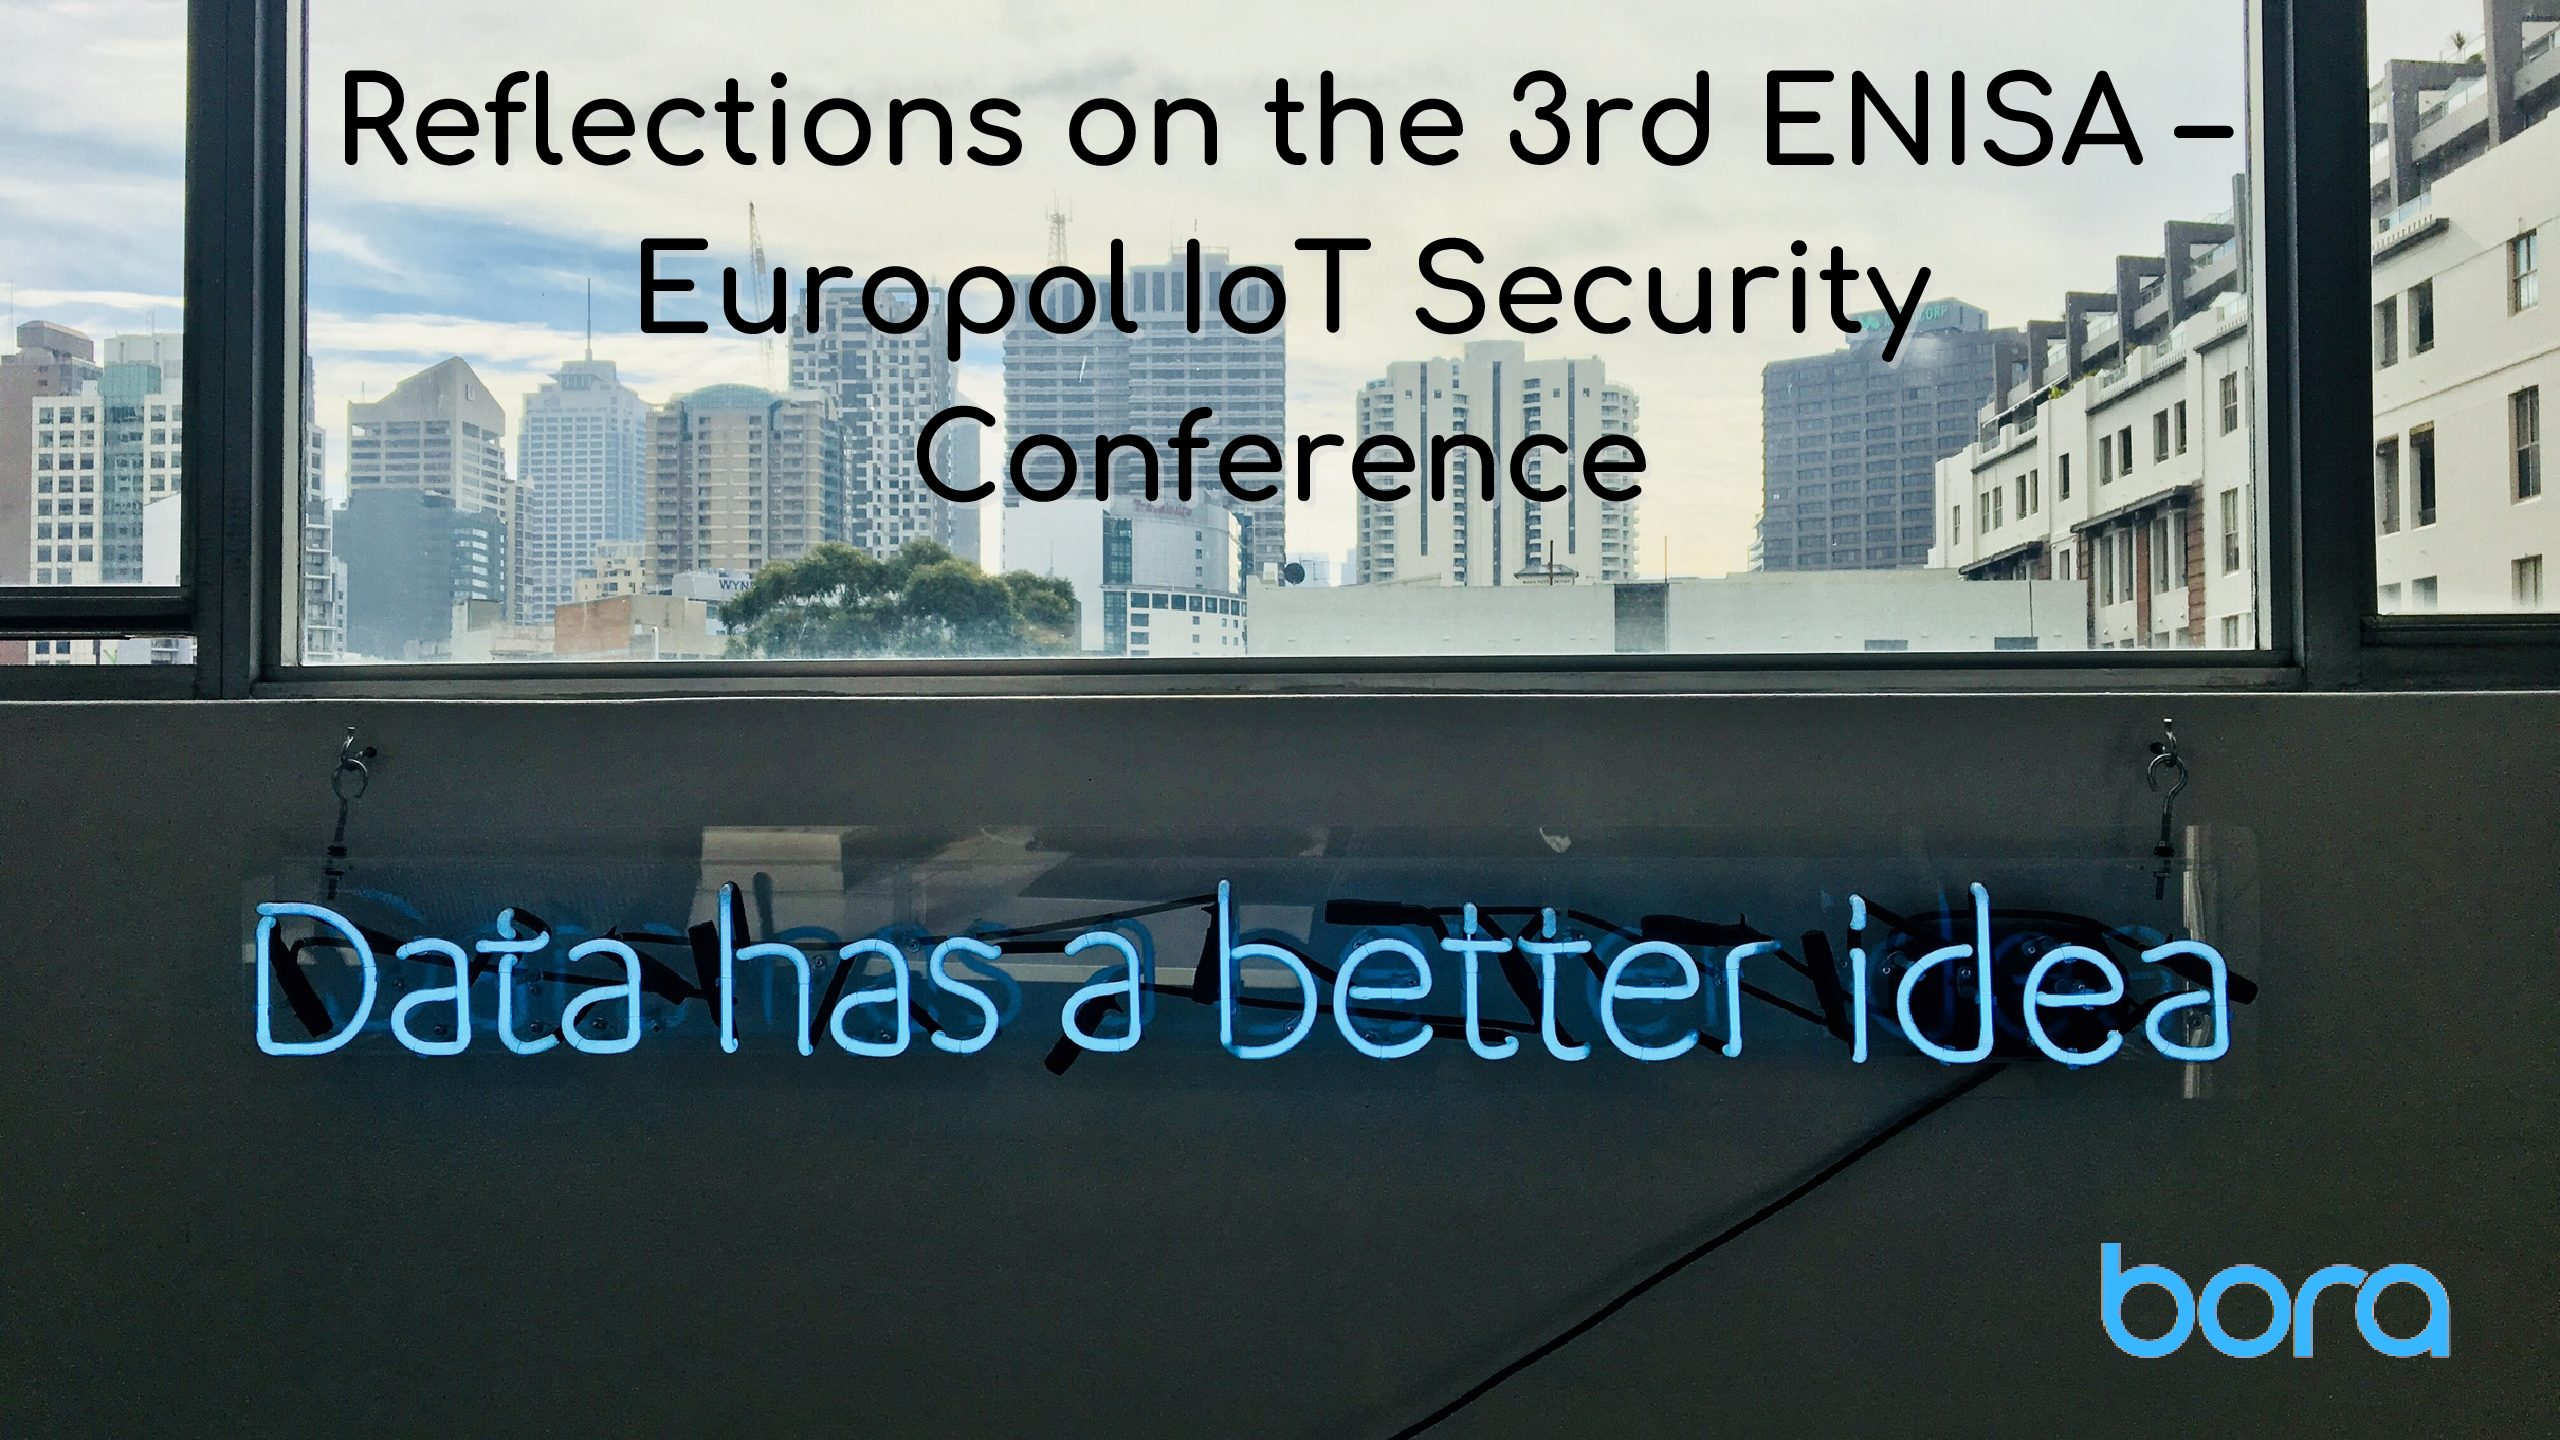 Reflections on the 3rd ENISA – Europol IoT Security Conference